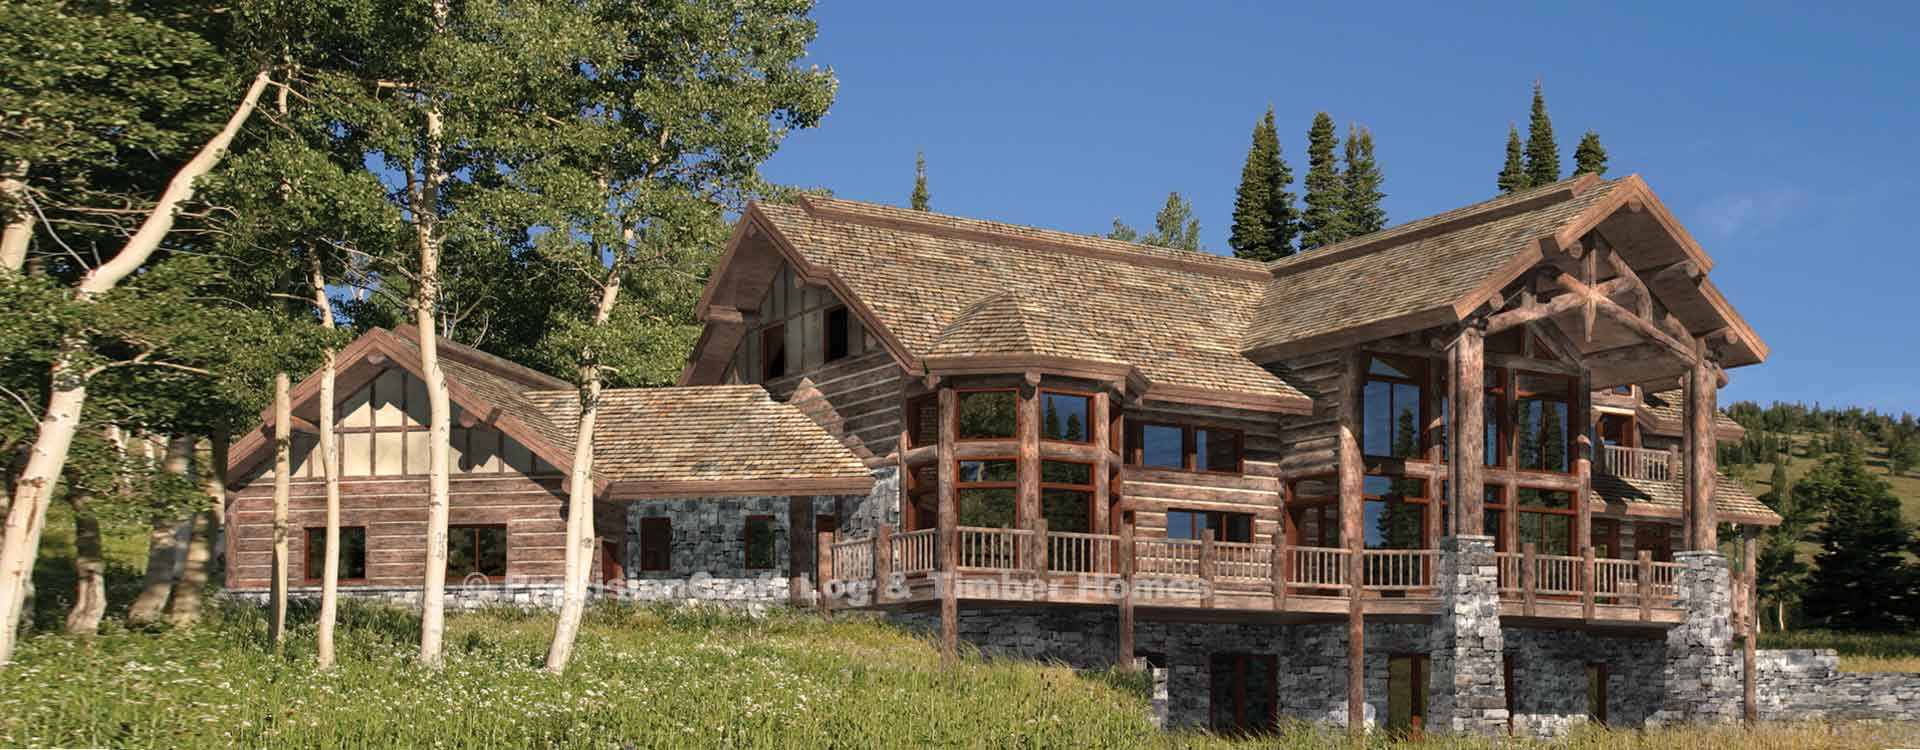 Big sky luxury log home plan Luxury log home plans